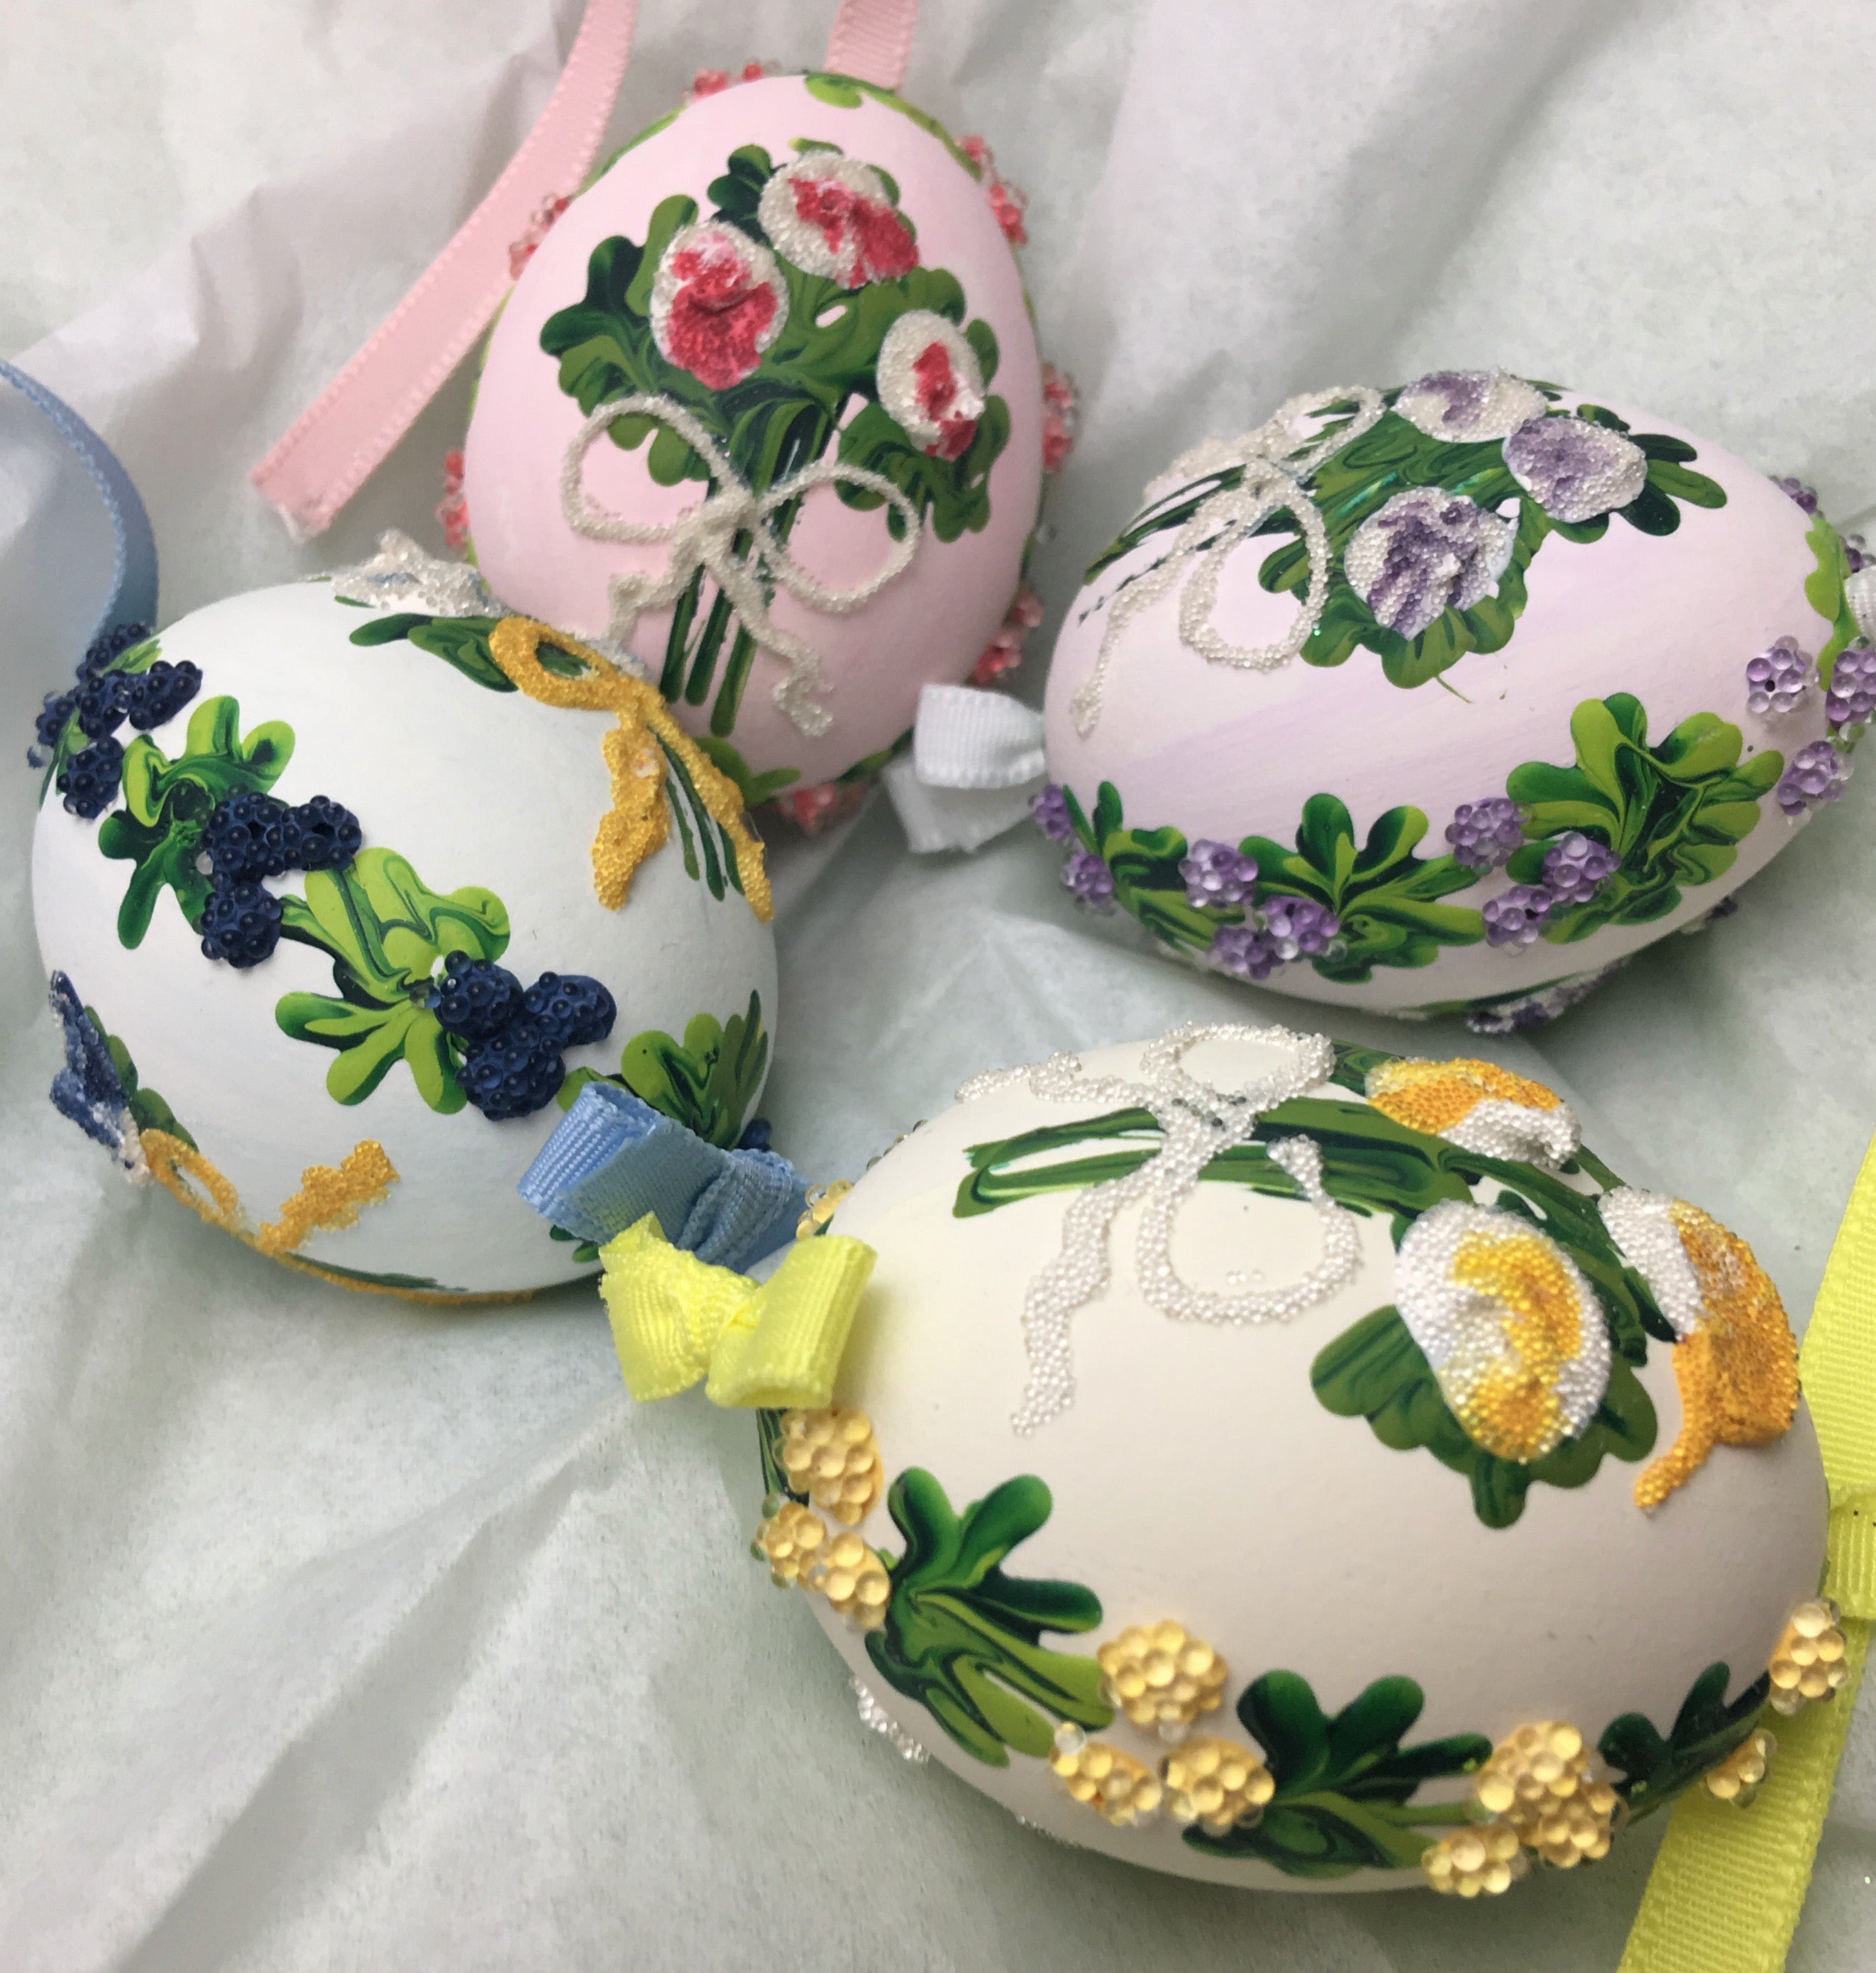 Easter Ornaments Made from Real Eggshells Decorated with Flowers